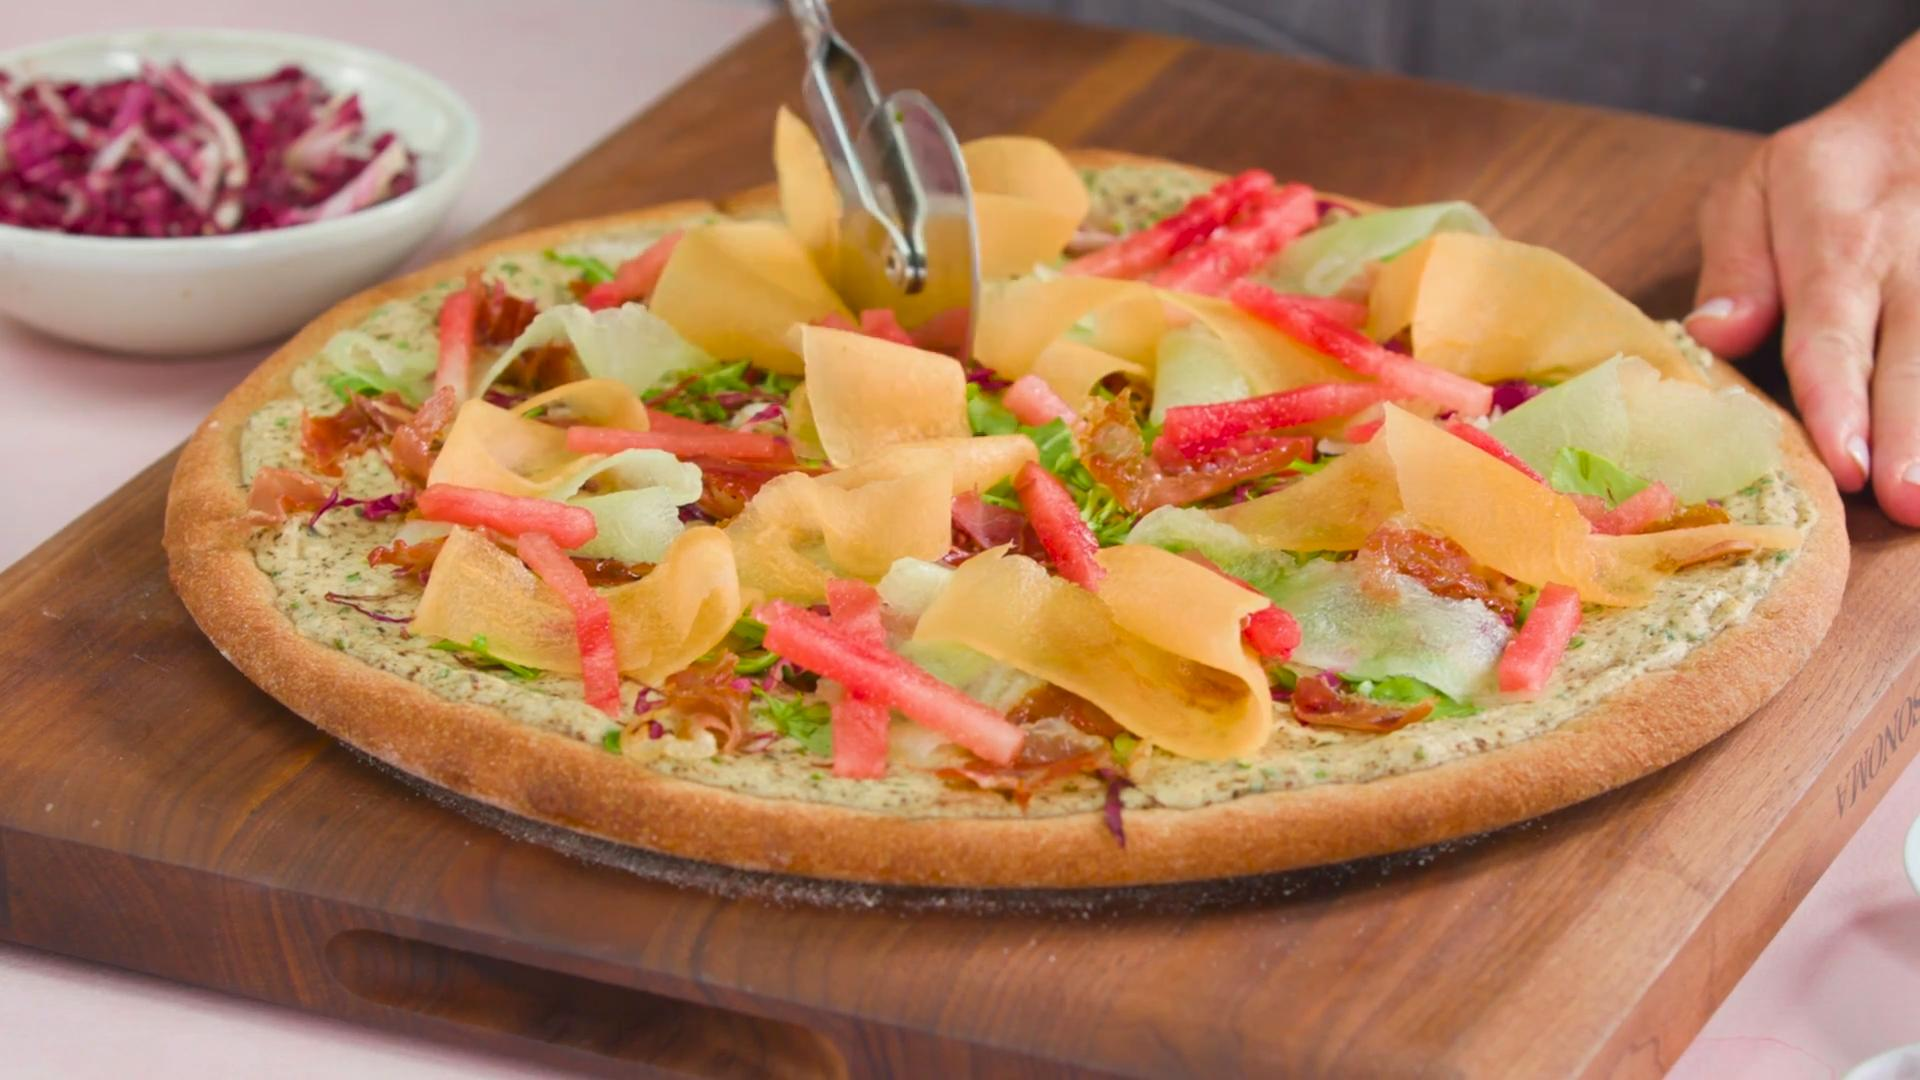 How to Make White Pizza With Melon and Prosciutto